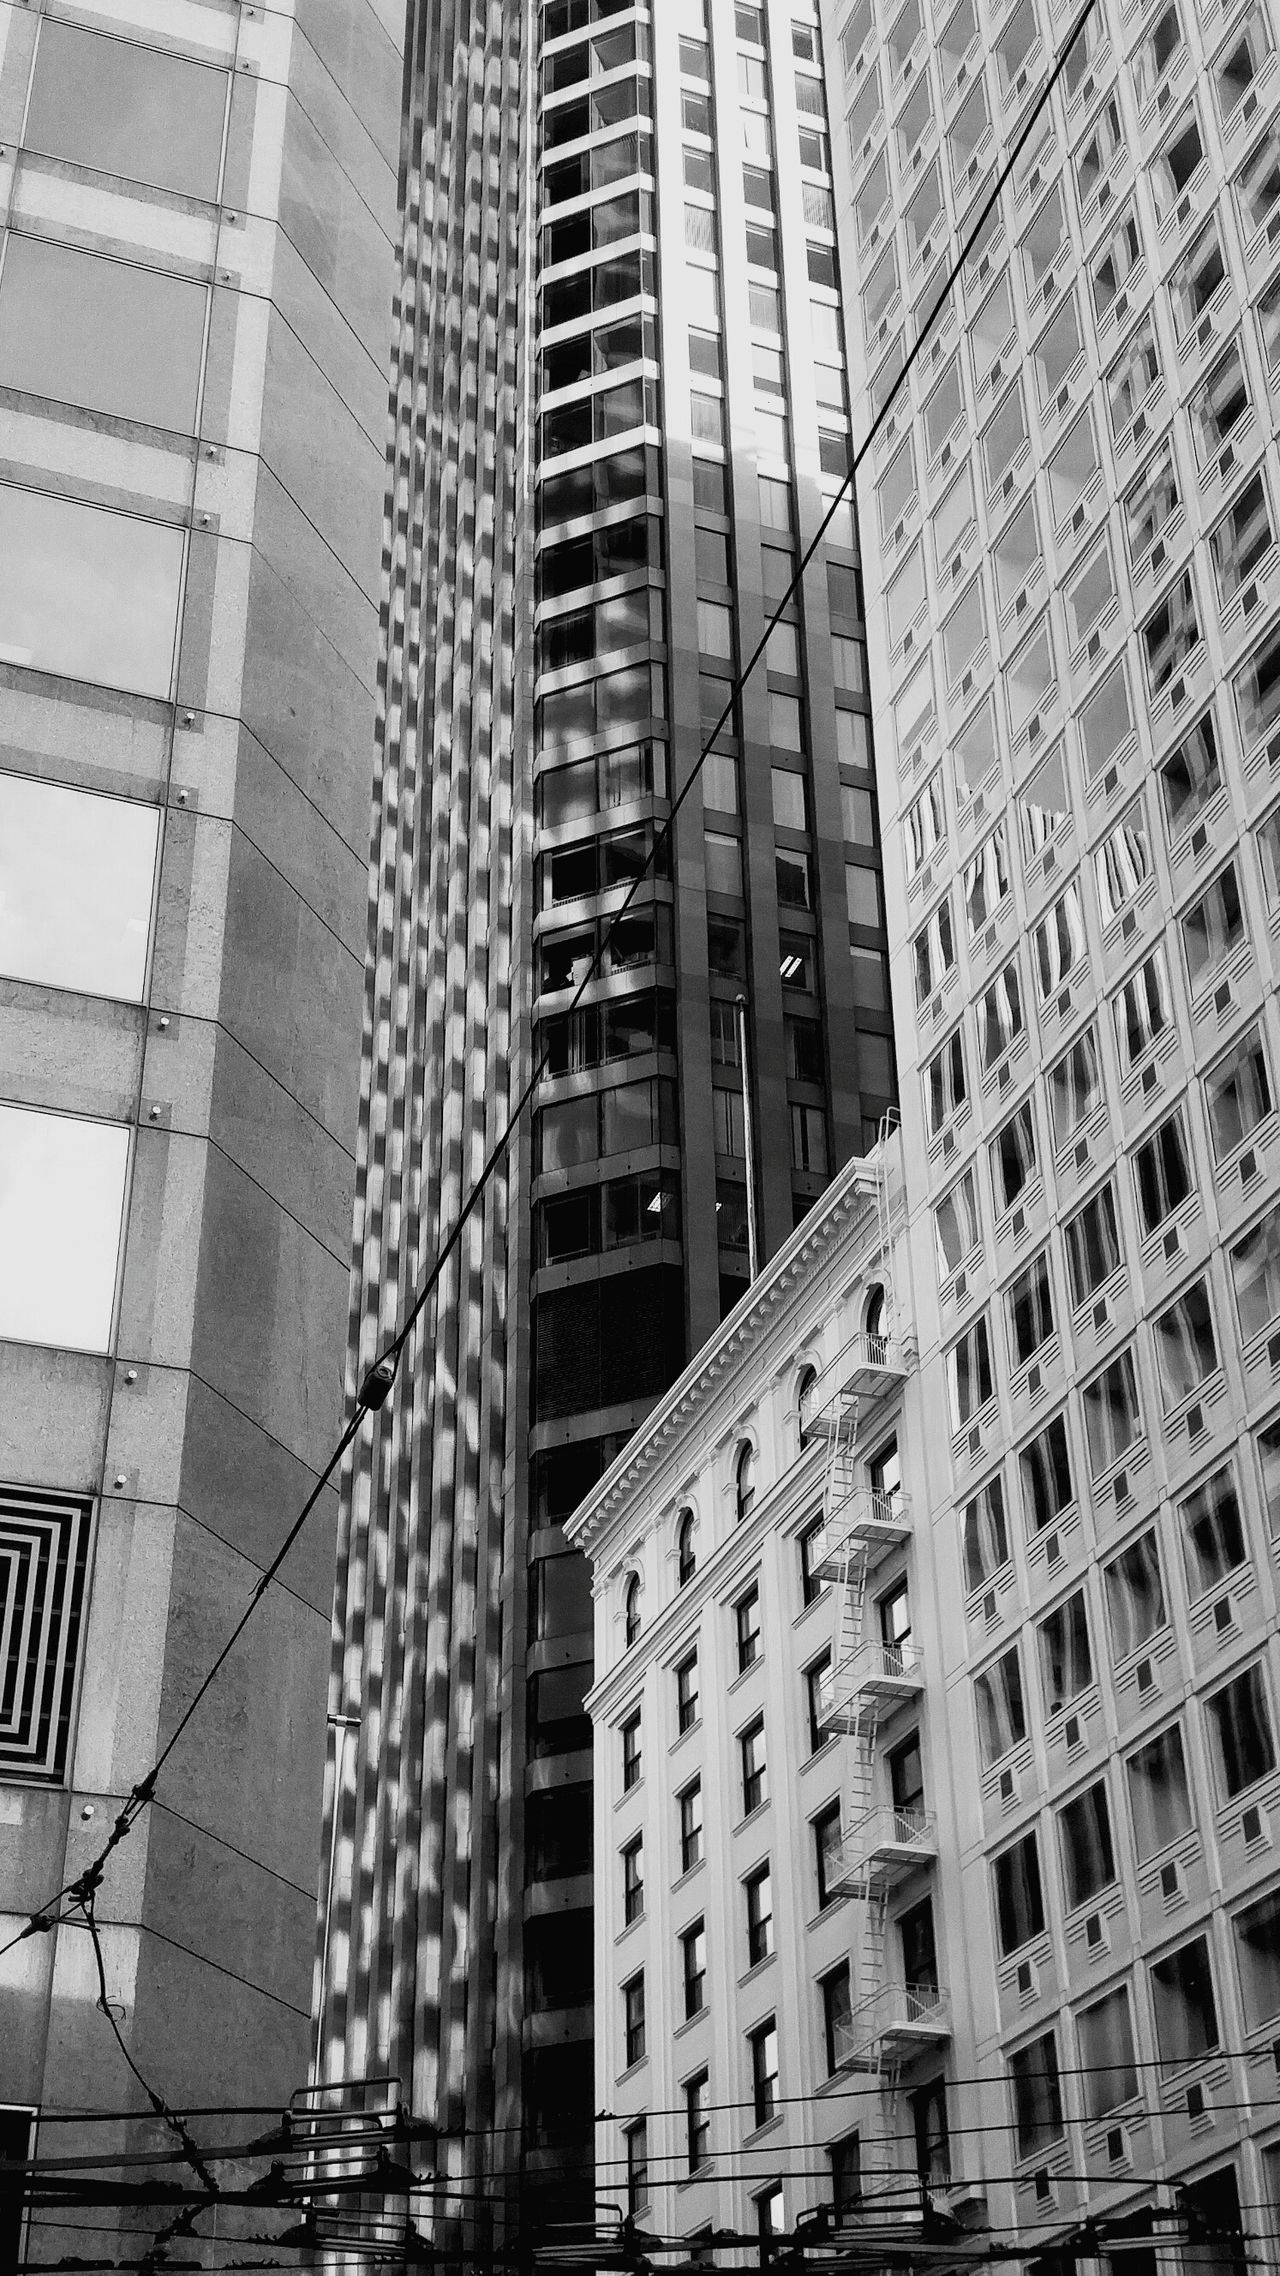 Architecture Building Exterior Built Structure City No People Pattern Travel Destinations Day Outdoors Skyscraper Landscape San Francisco Urban Geometry Urban Landscape Backgrounds Low Angle View Architecture City City Life Building Glass Unique Perspectives Unique